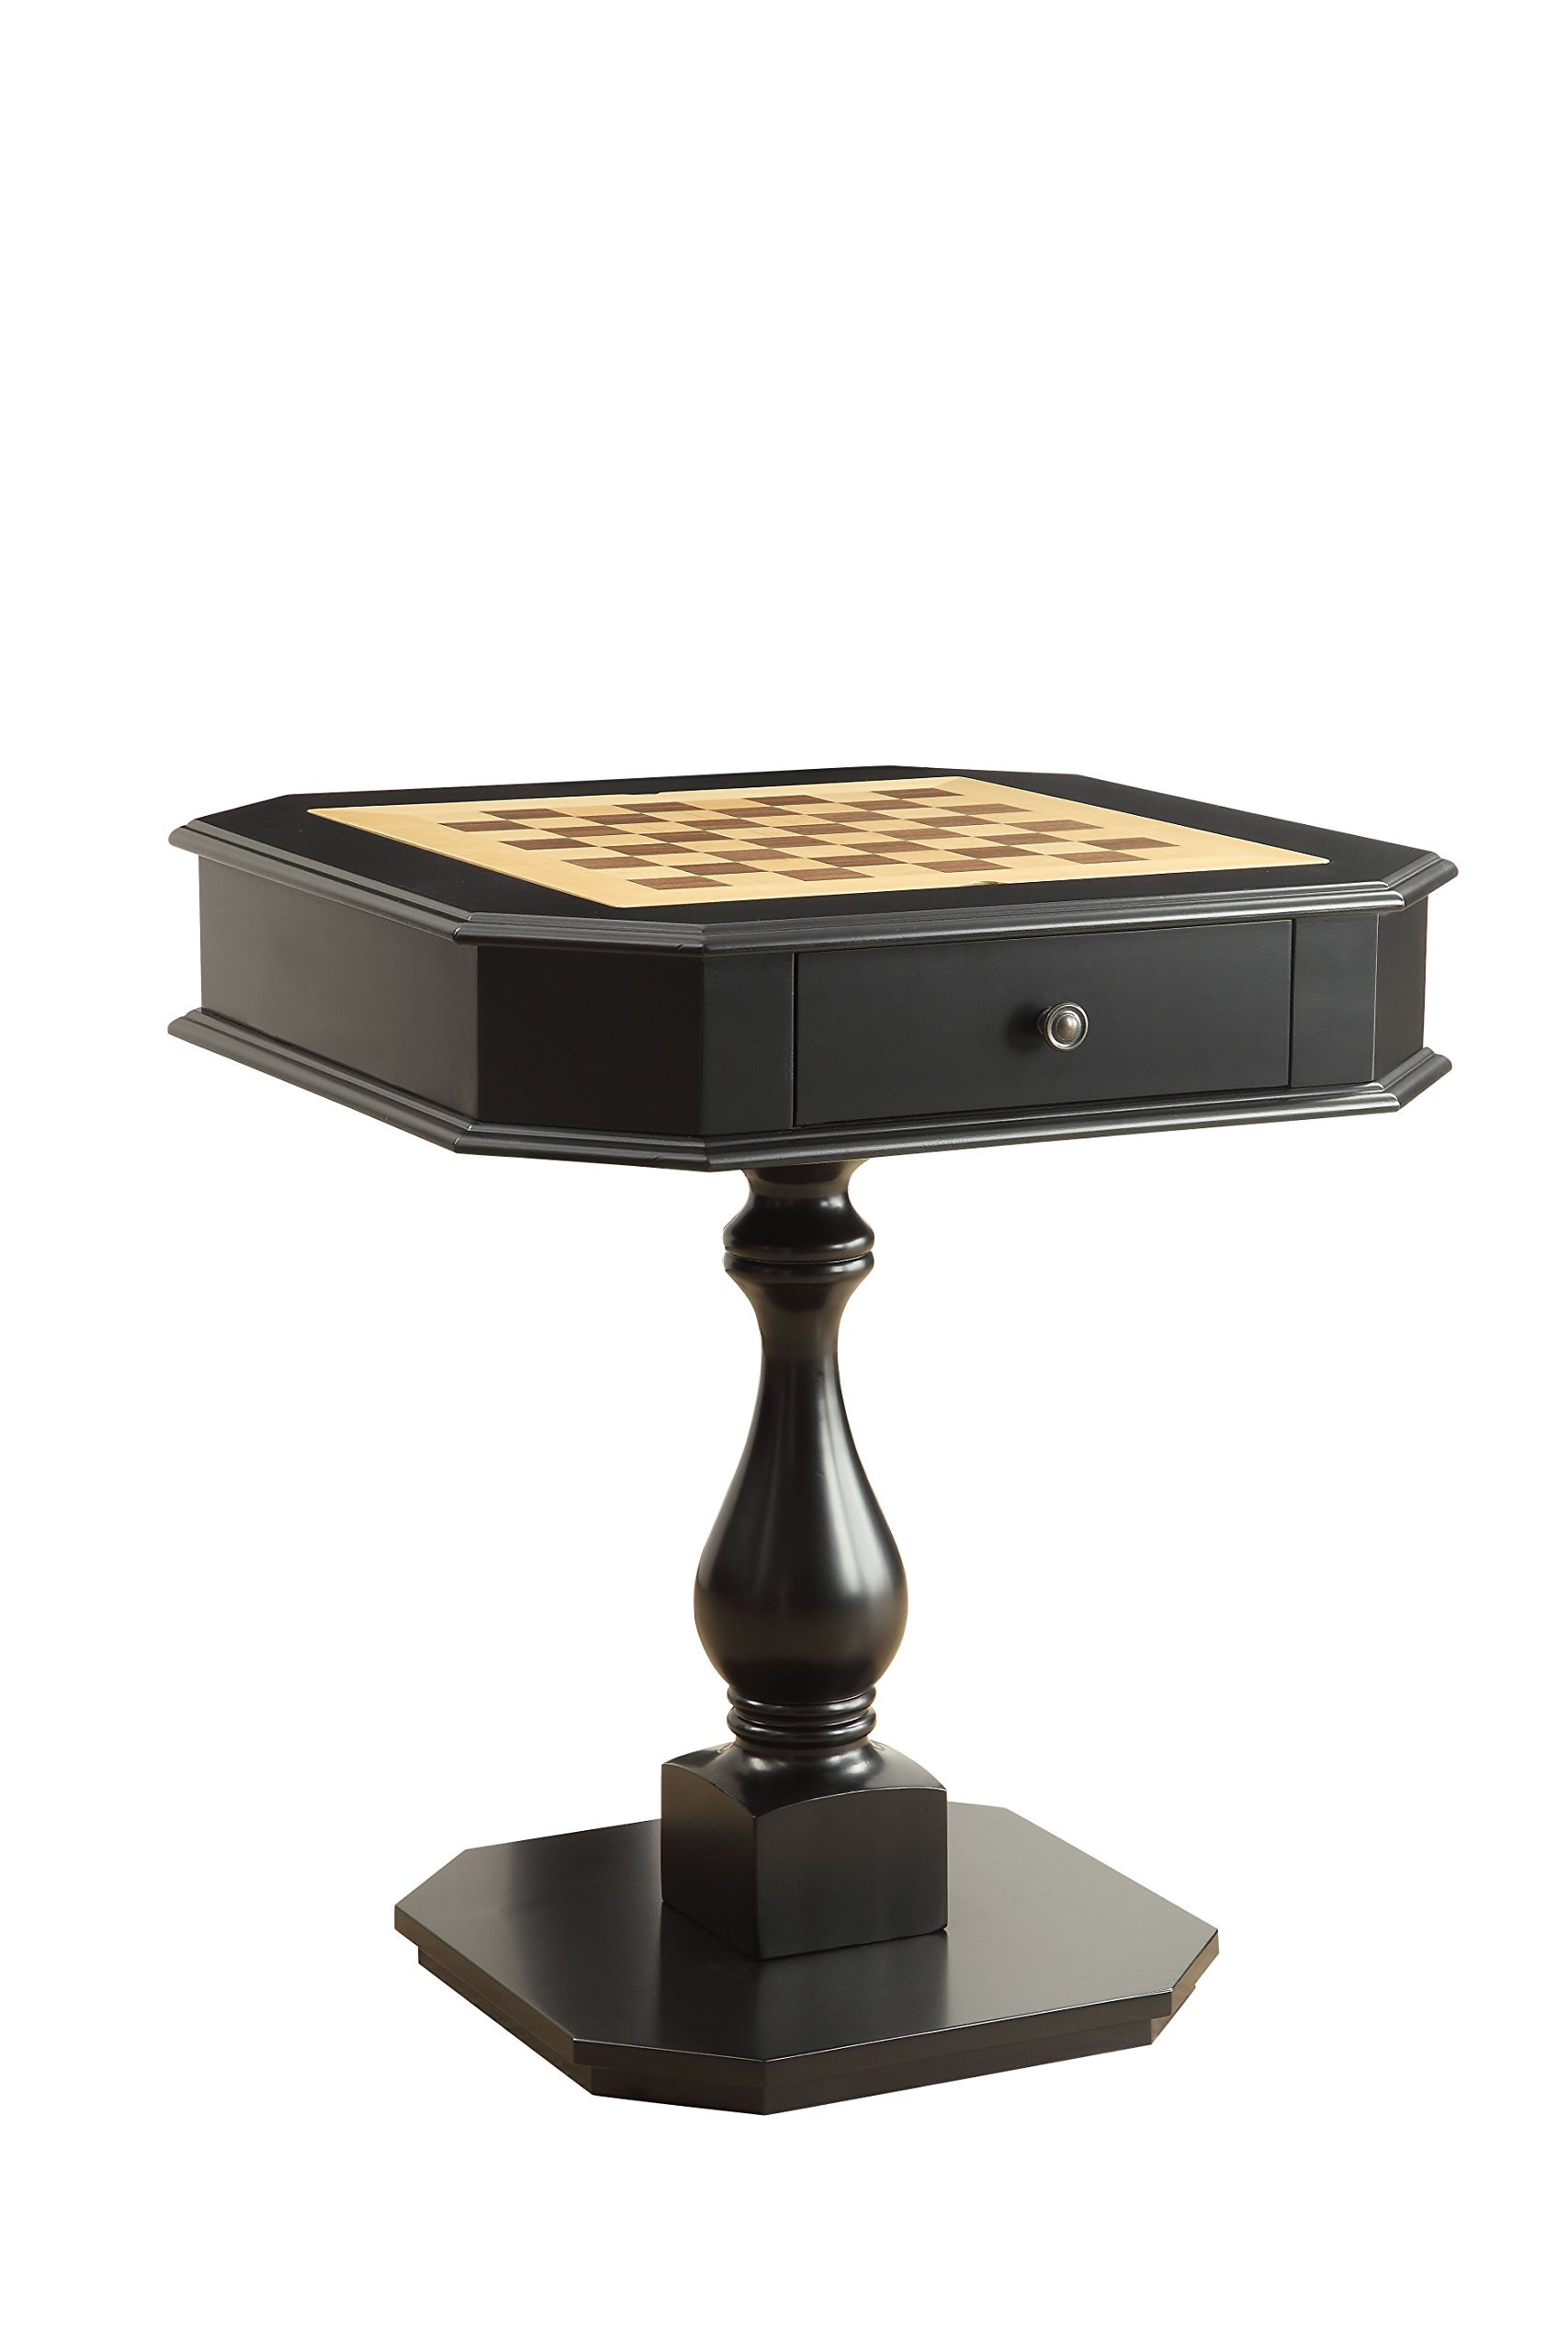 Acme Furniture Acme 82846 Bishop Game Table, Black, One Size by Acme Furniture